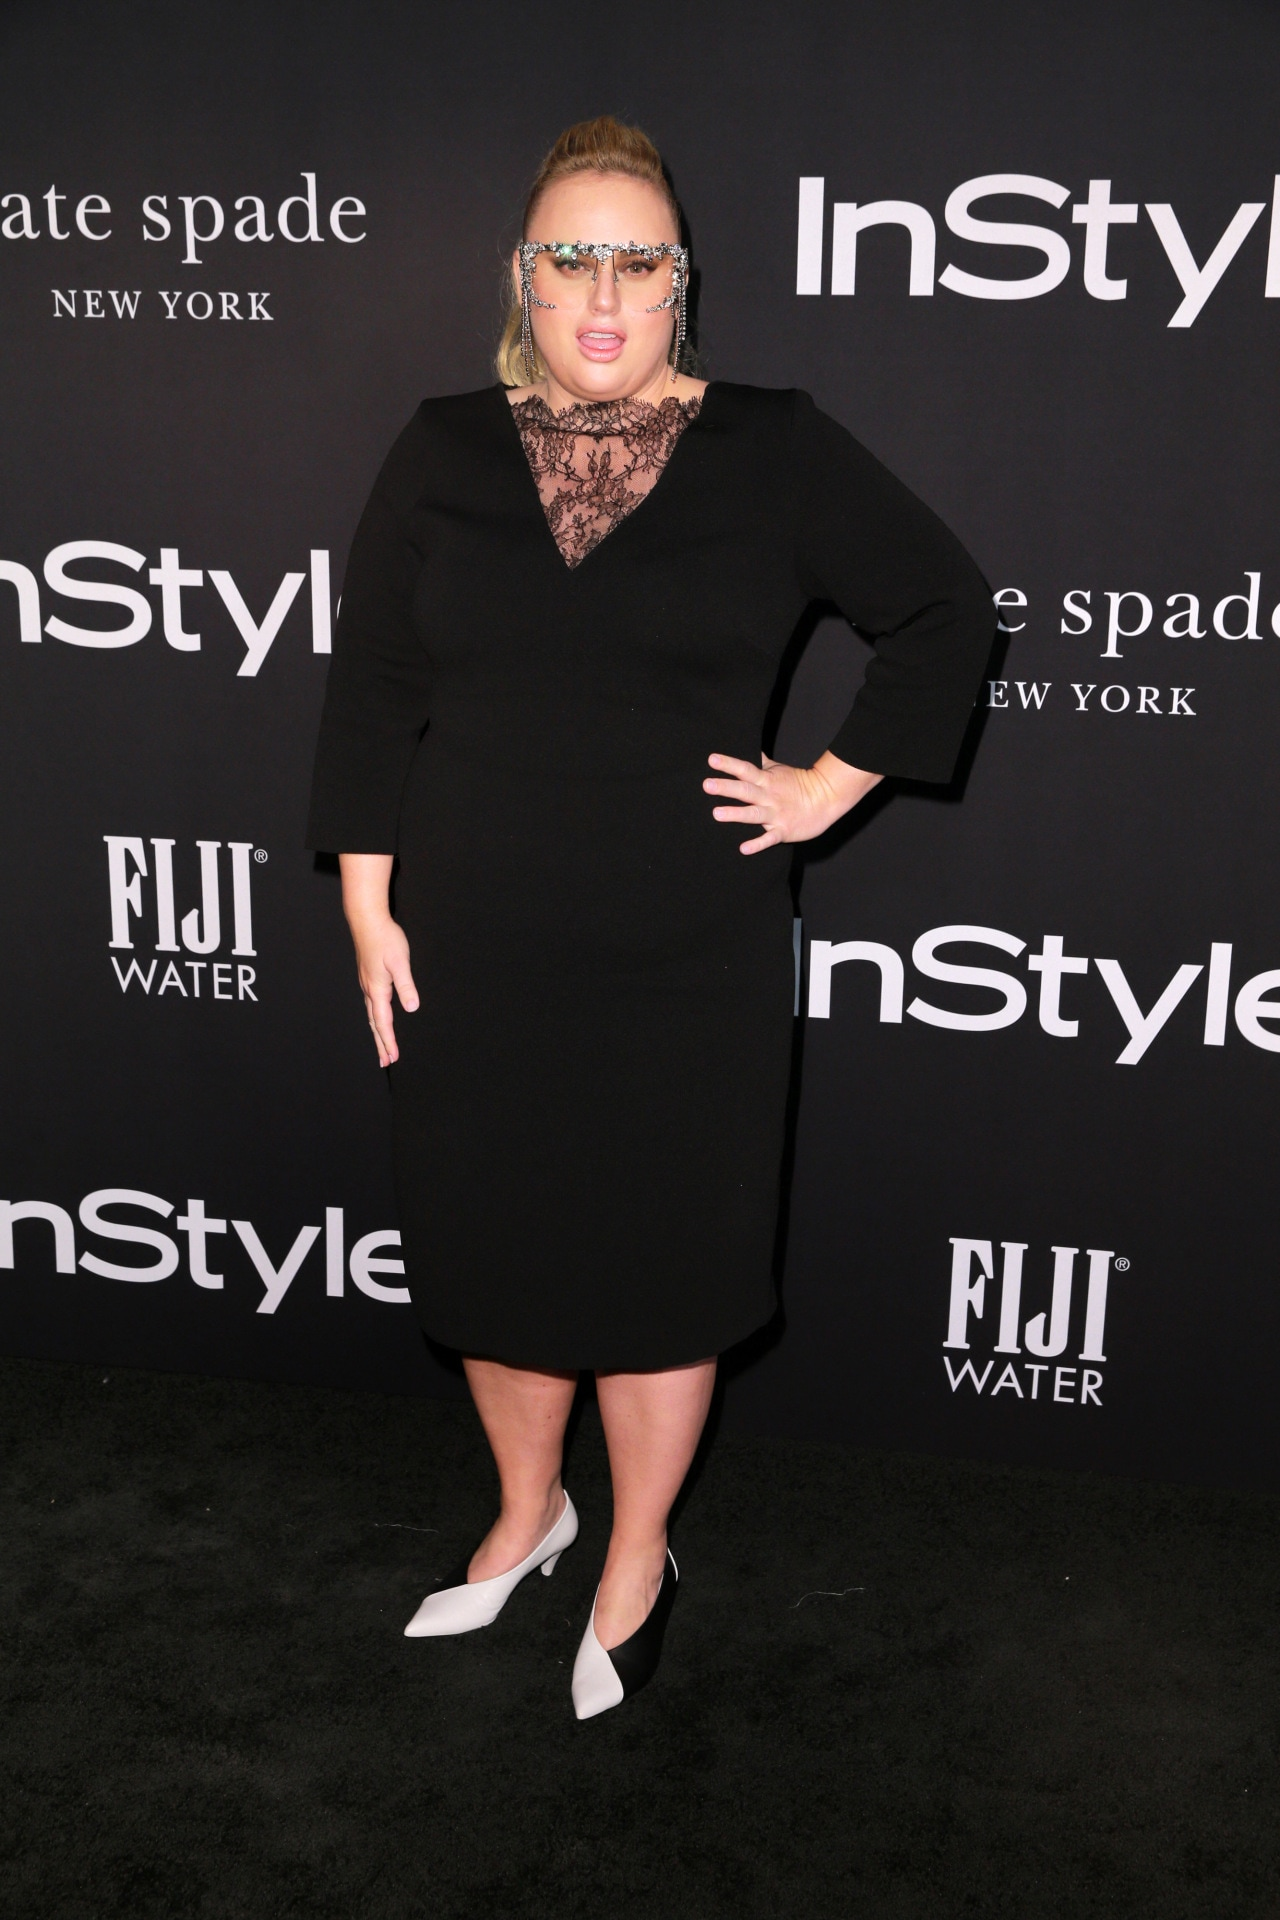 e876dee8de7 Rebel Wilson wearing custom Givenchy on the red carpet is a big deal ...